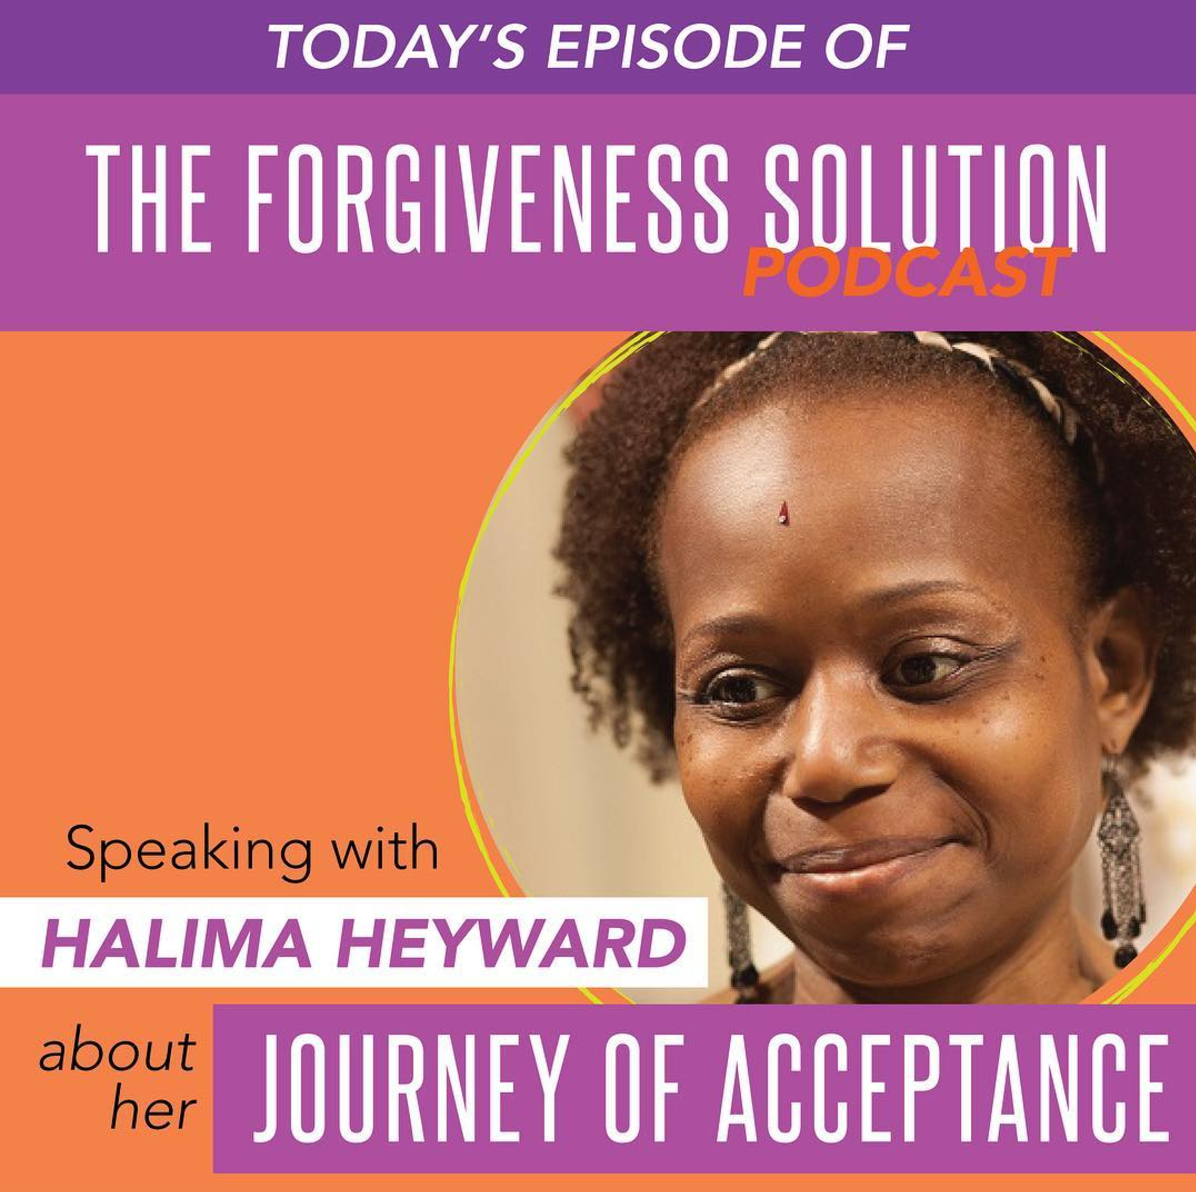 Halima Heyward and Journey of Acceptance